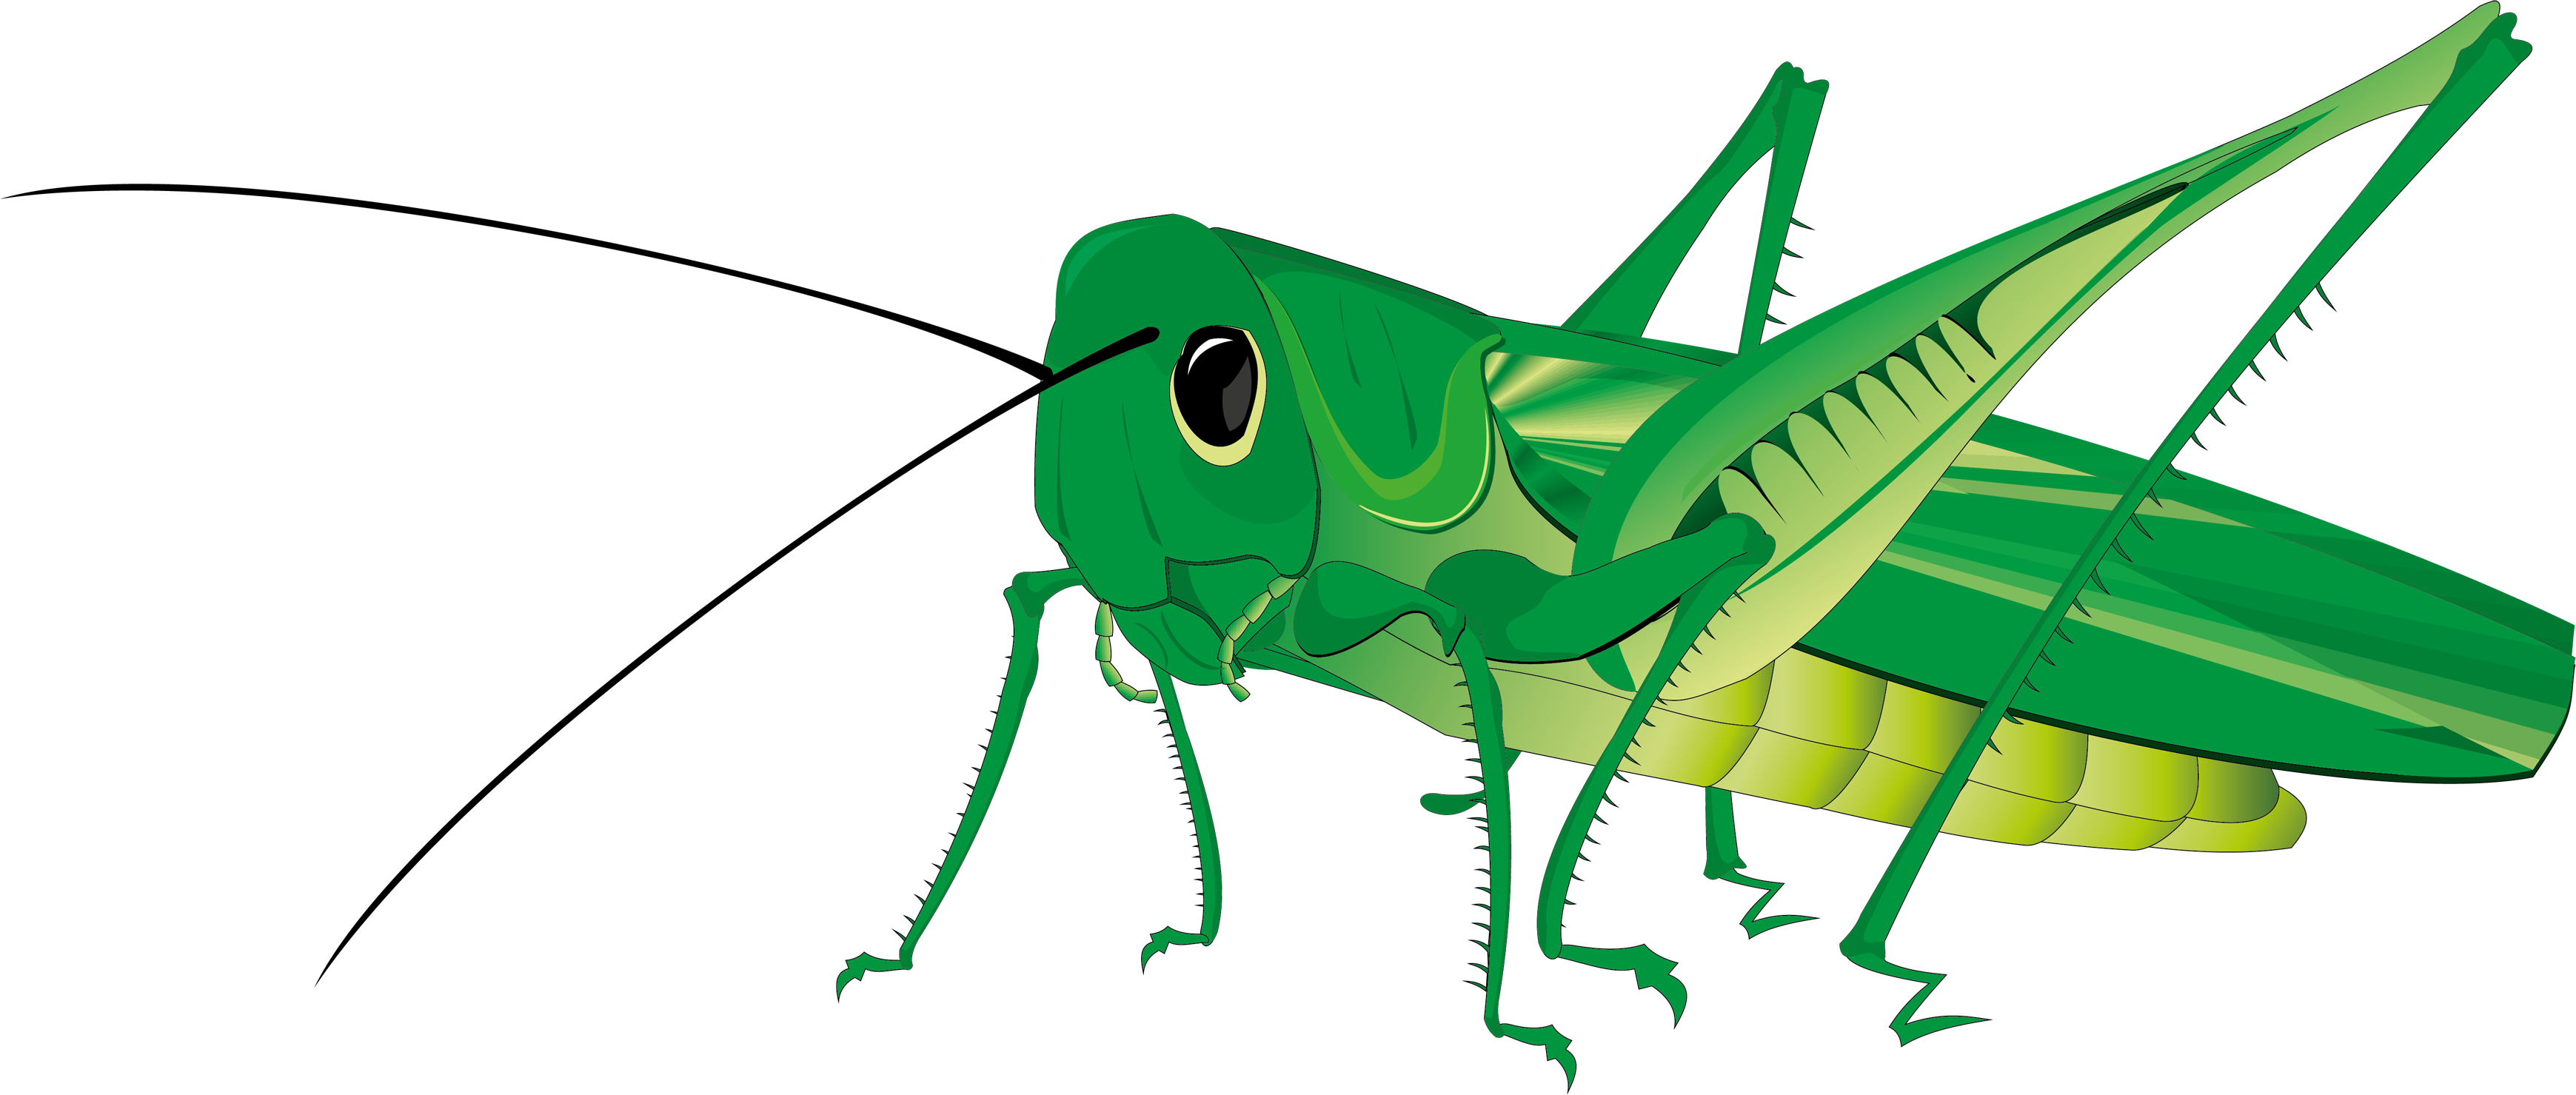 3479x1479 Grasshopper Png Images Free Download